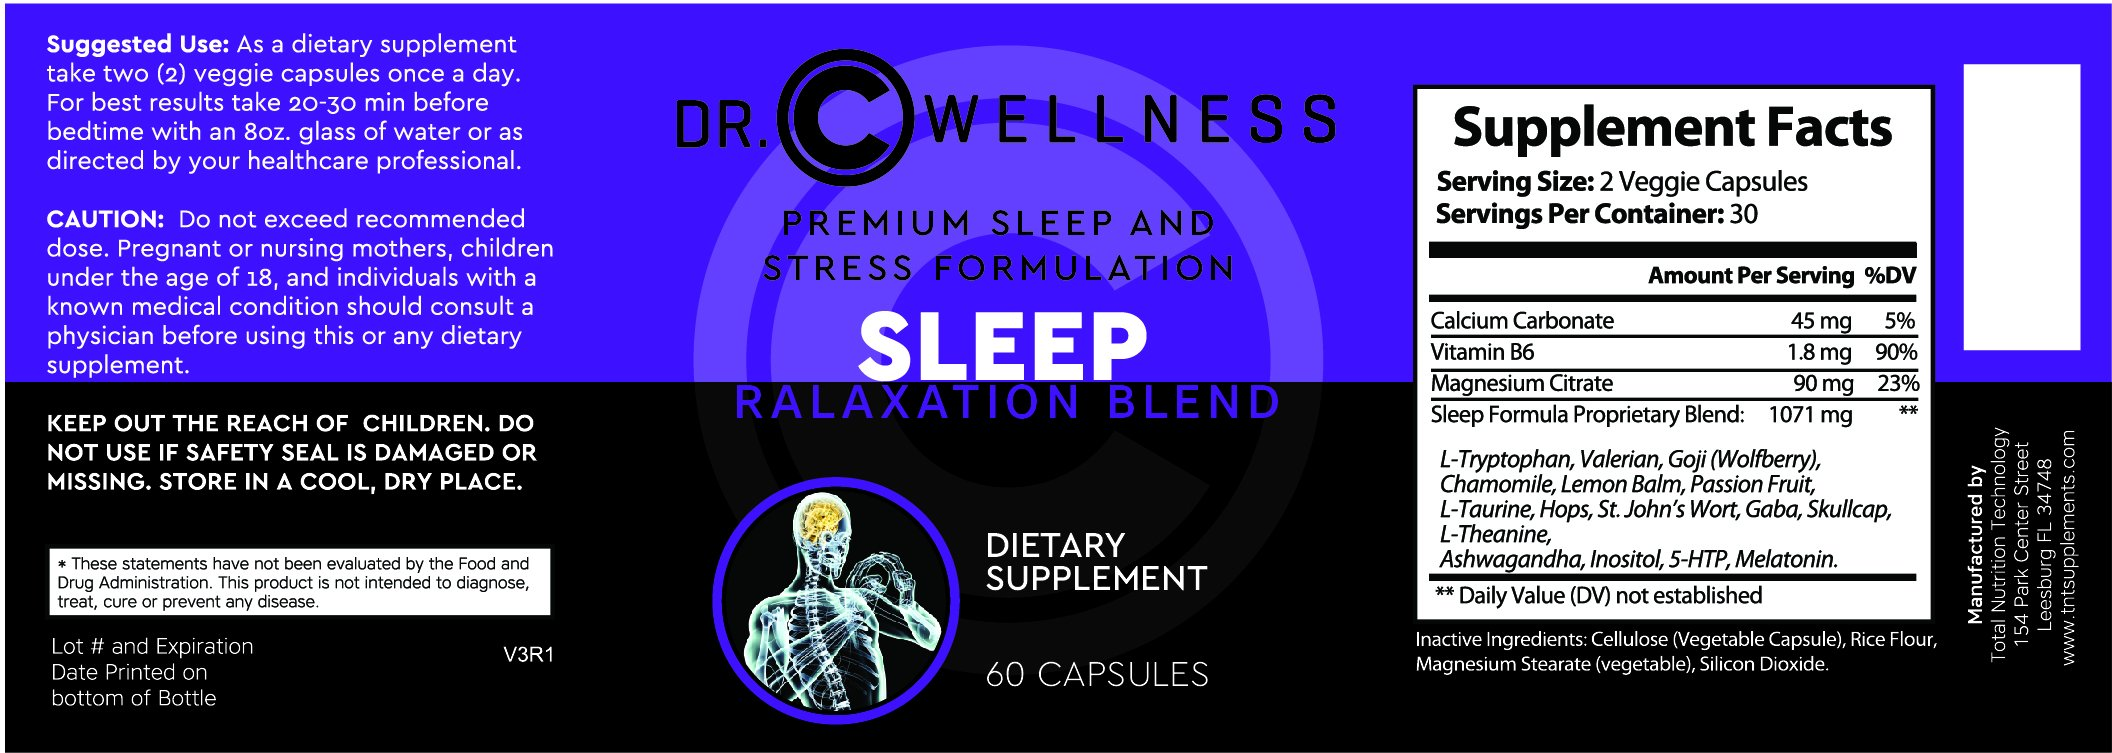 Natural Sleep and Relaxation Blend with Valerian Root, Melatonin, L-Tryptophan, St-John's Wart, Ashwagandha, 5-HTP, Inositol, Chemomile.